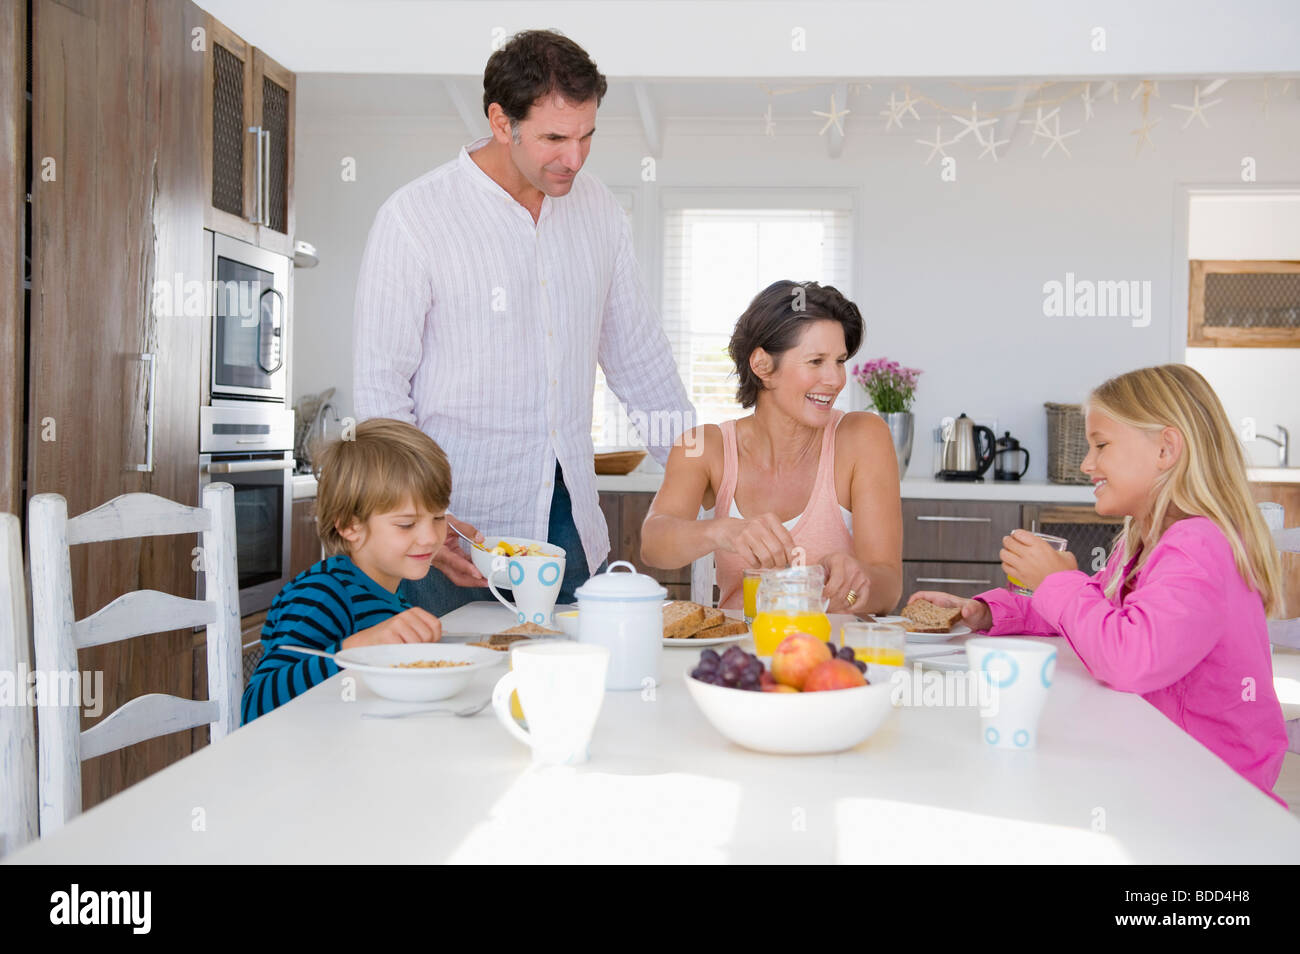 familie fr hst cken am esstisch stockfoto bild 25489892 alamy. Black Bedroom Furniture Sets. Home Design Ideas